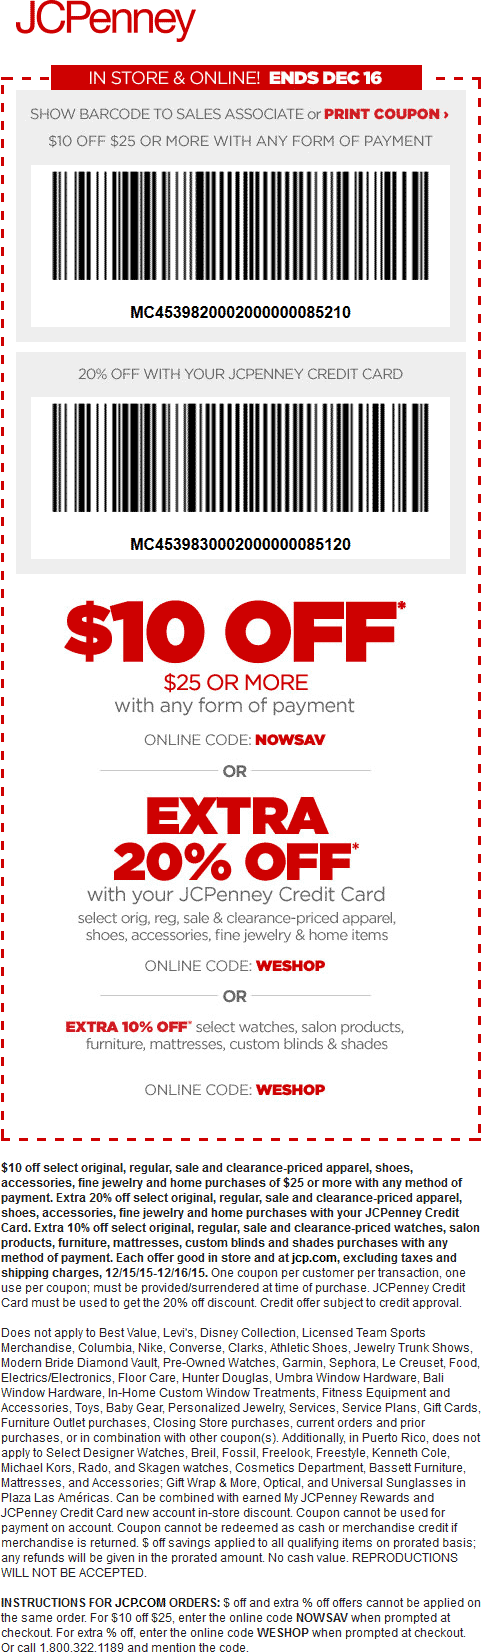 JCPenney Coupon October 2016 $10 off $25 at JCPenney, or online via promo code NOWSAV